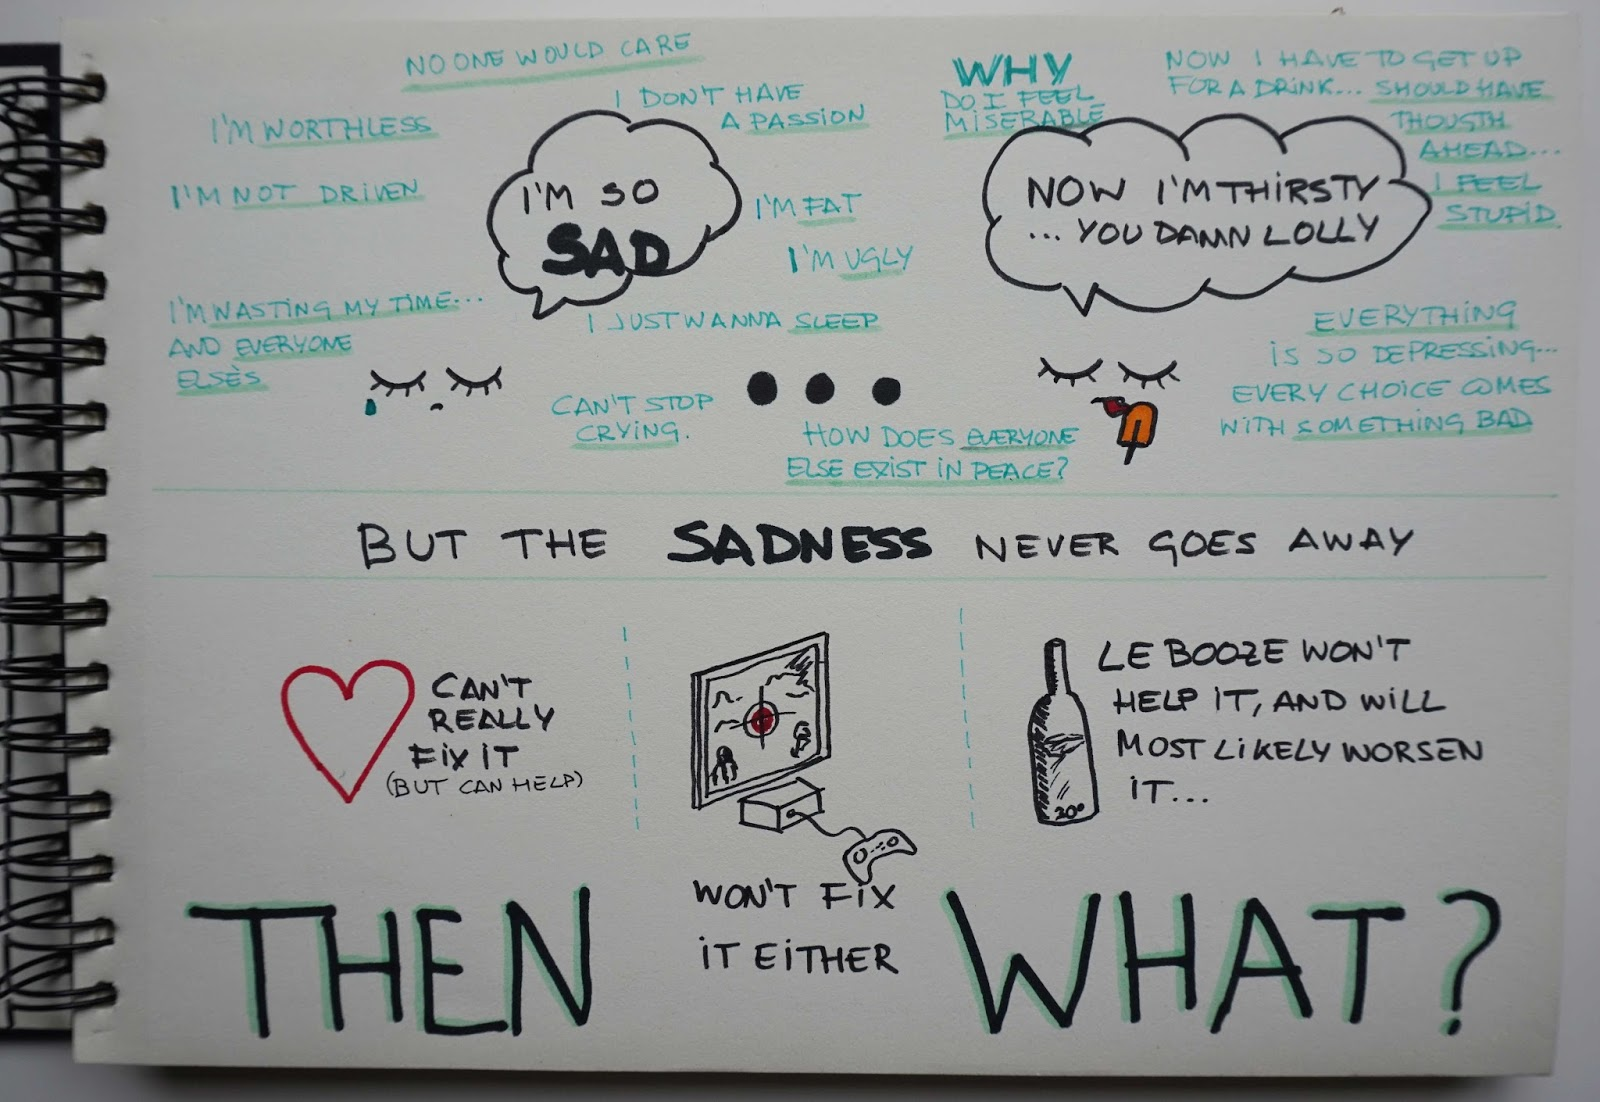 Mental Health Issues, sadness